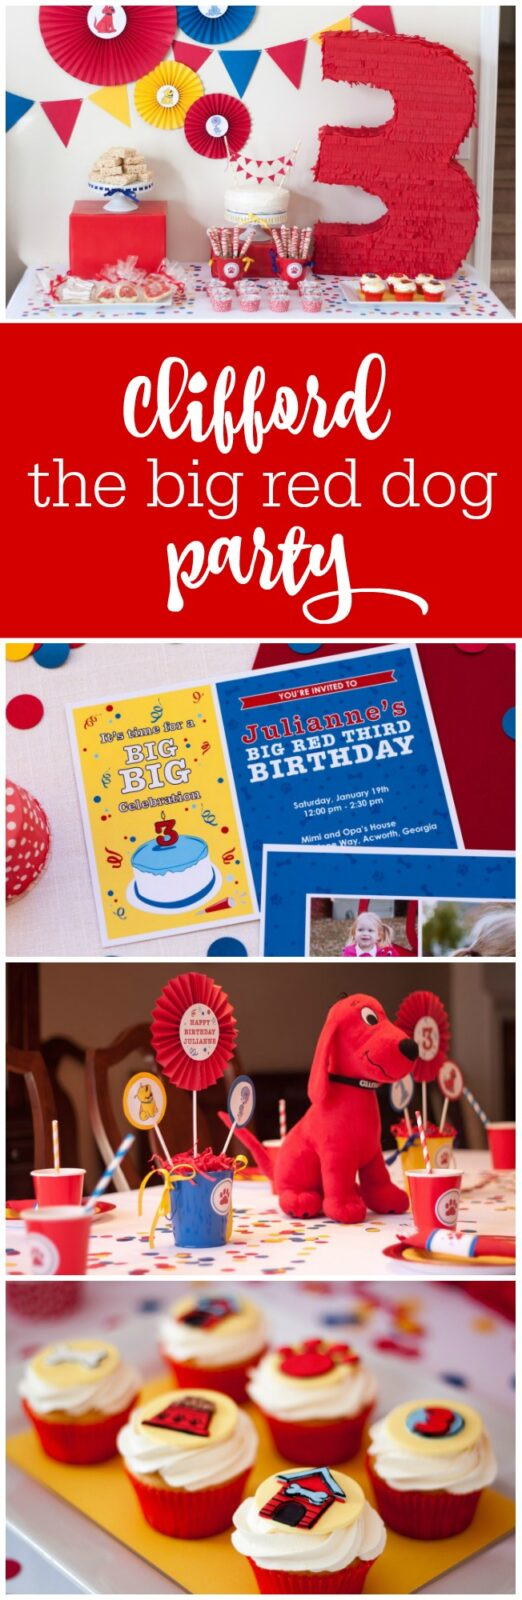 Clifford the Big Red Dog birthday party by Tickled Peach Studio featured on The Party Teacher